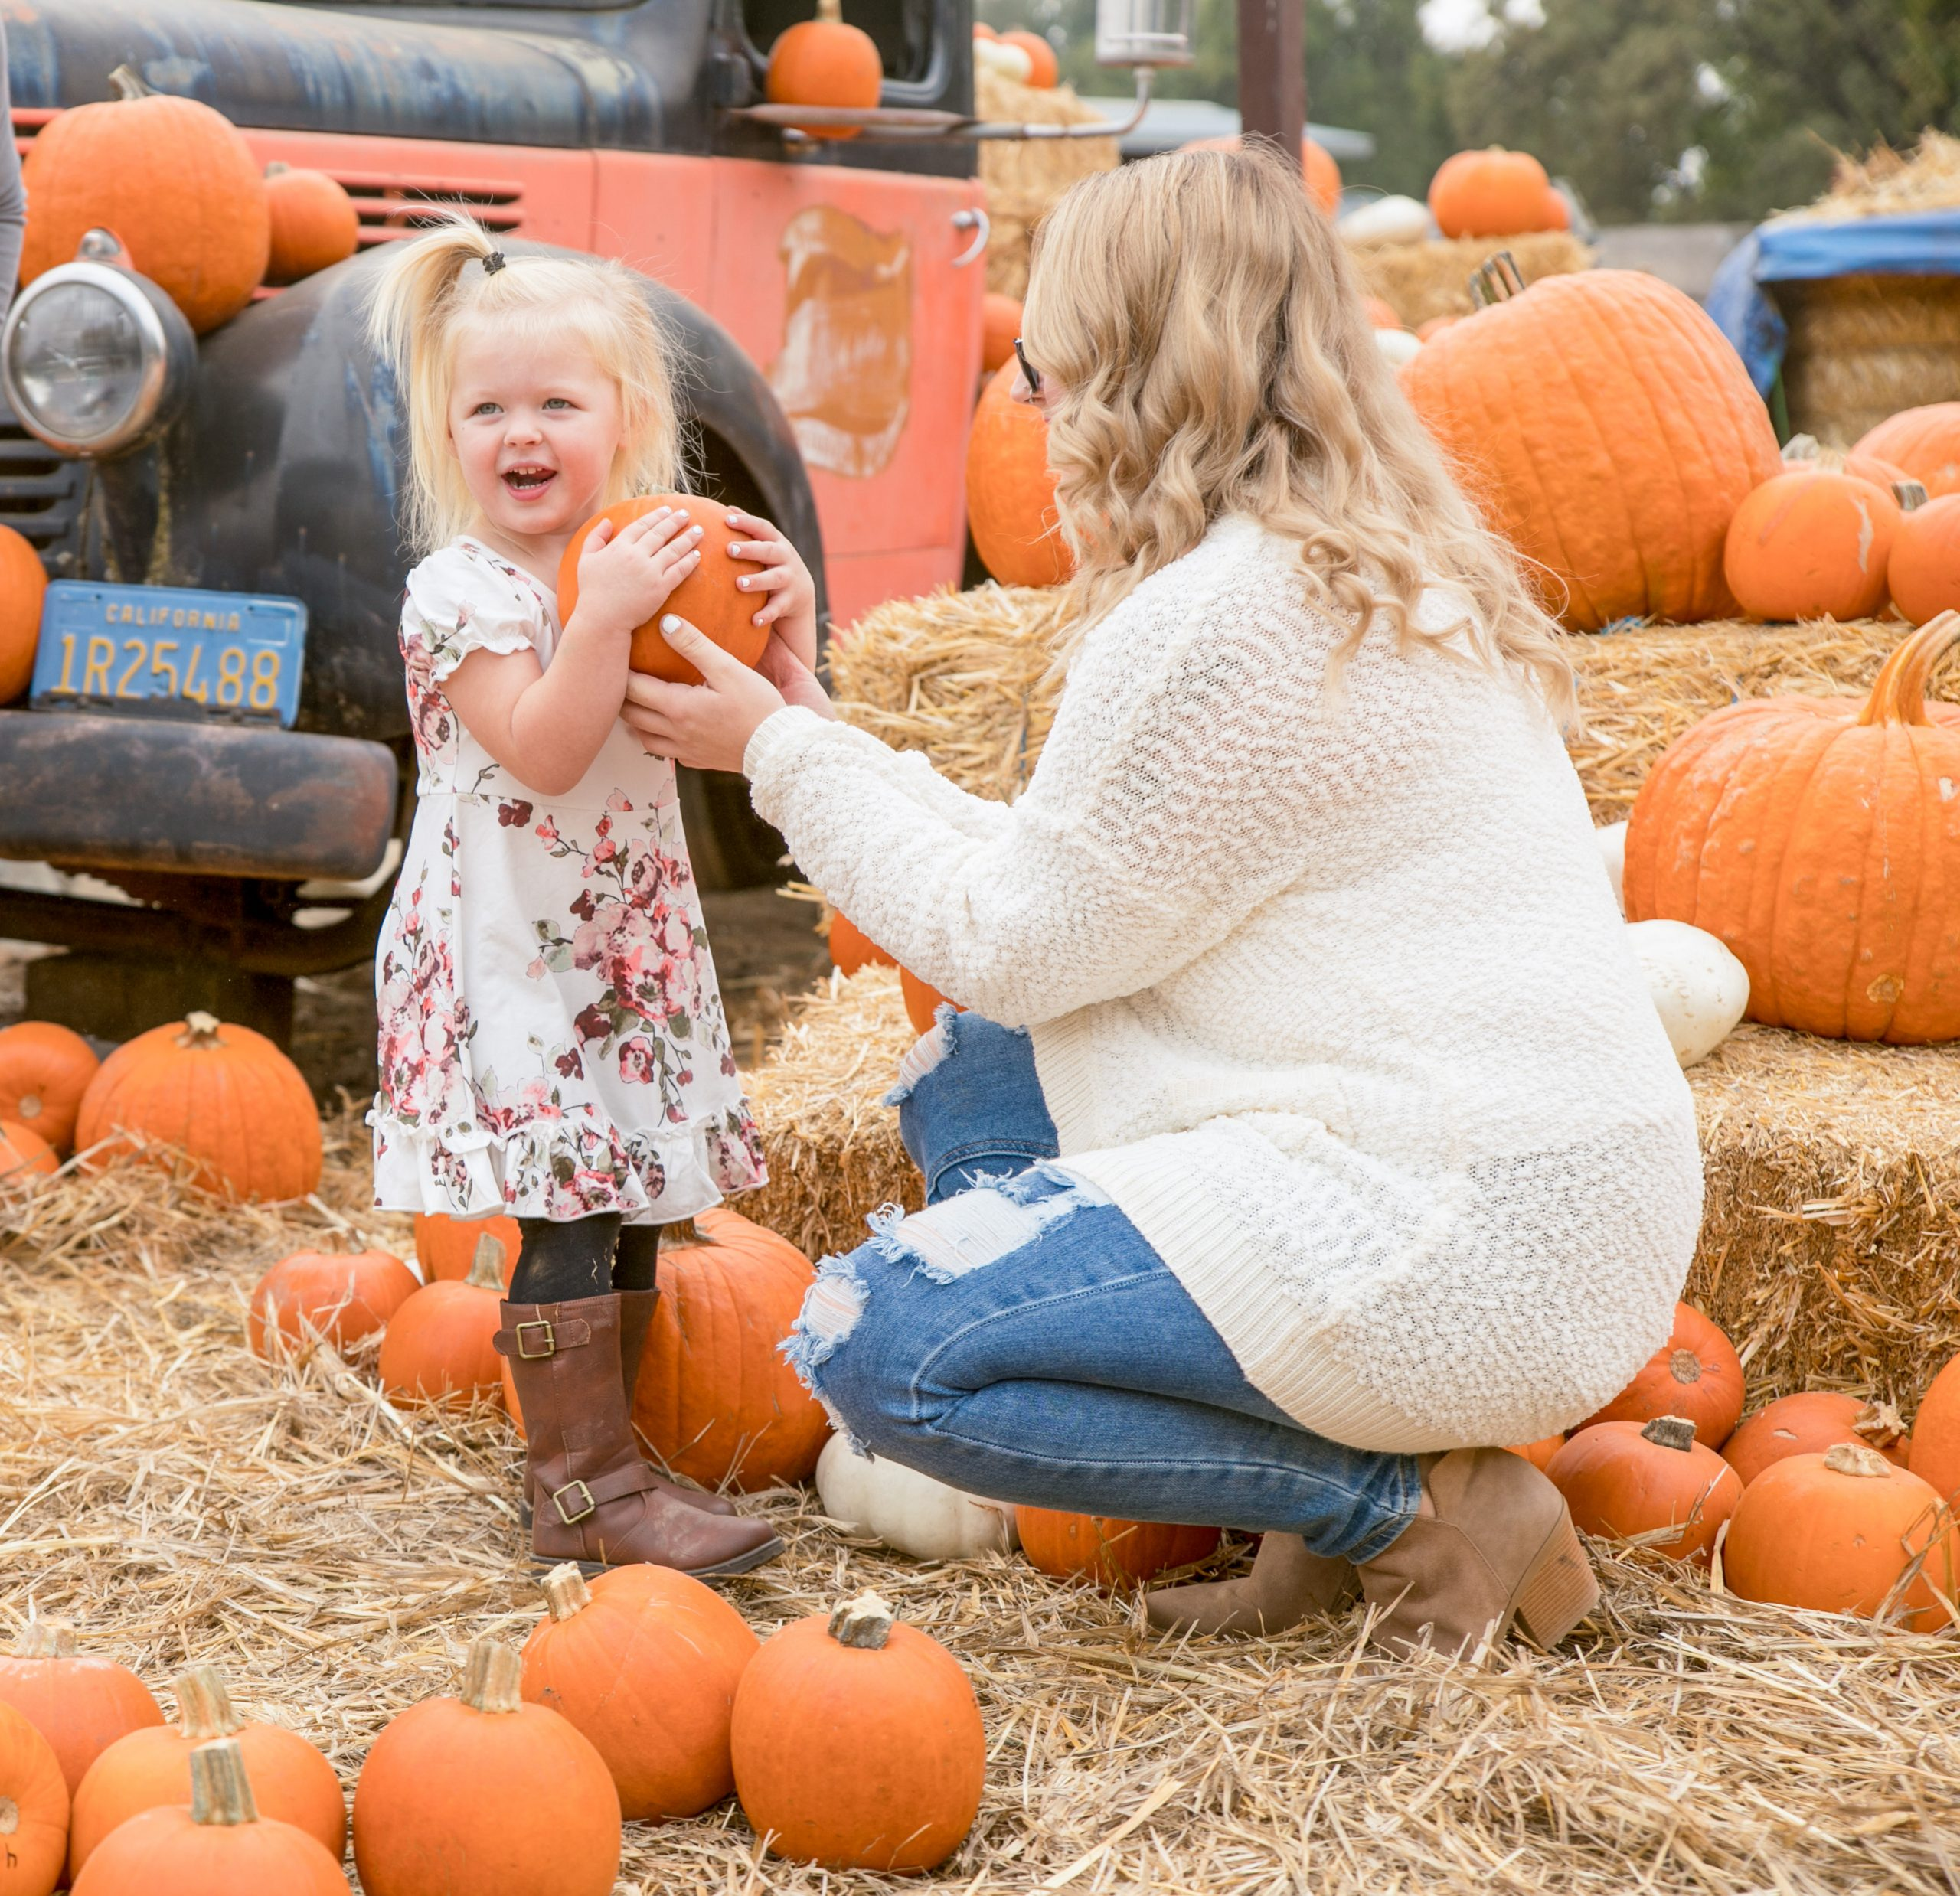 Mother and child in pumpkin patch